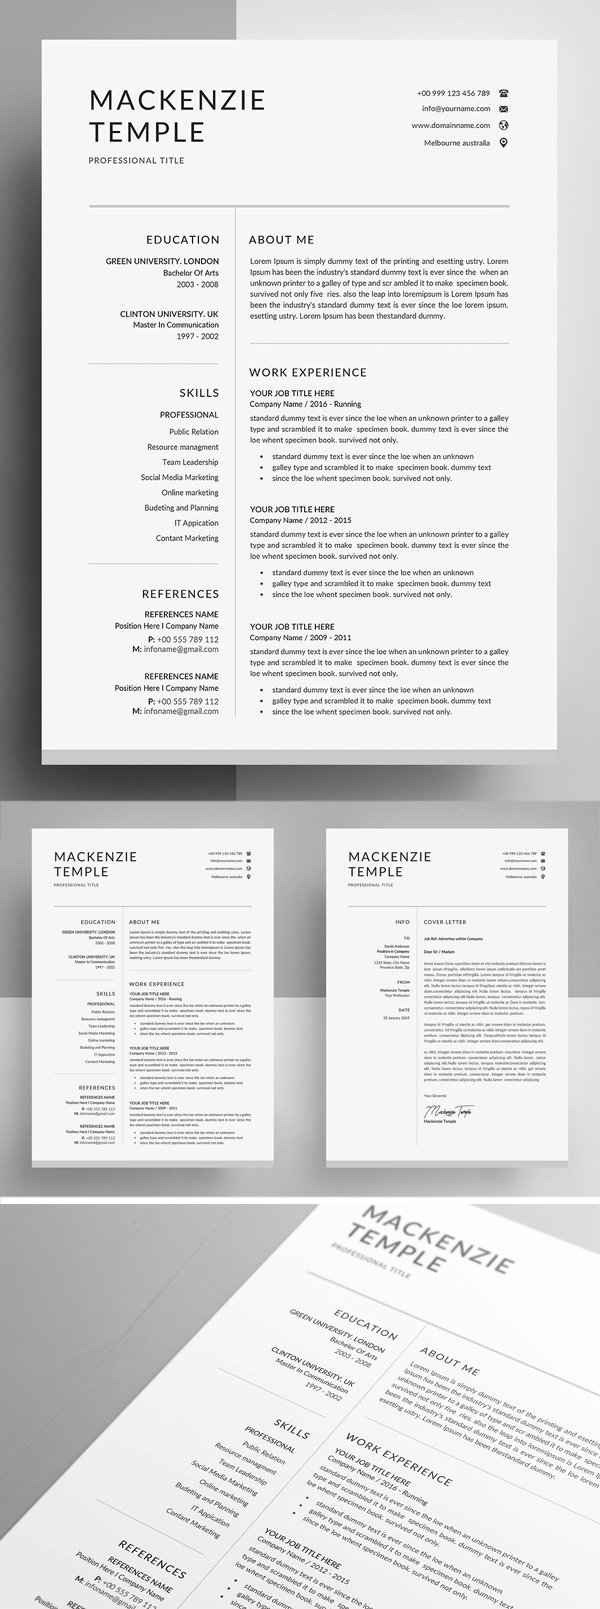 25 Best Resume Templates For 2020 in 2020